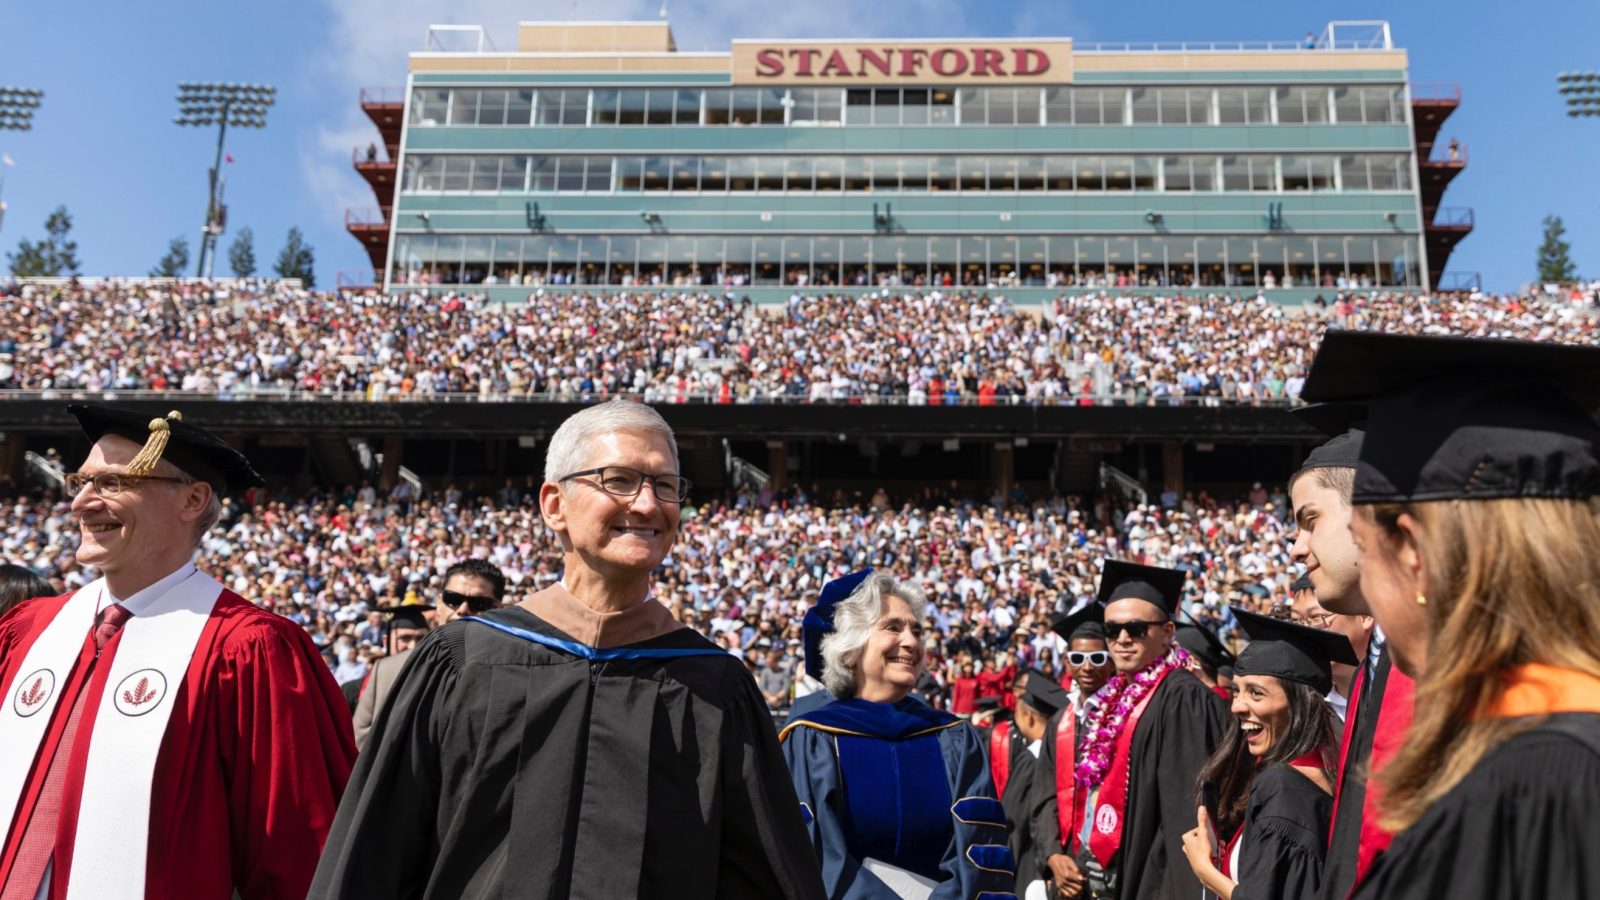 Tim Cook delivers Stanford commencement speech, talks Steve Jobs, privacy, more [Video]